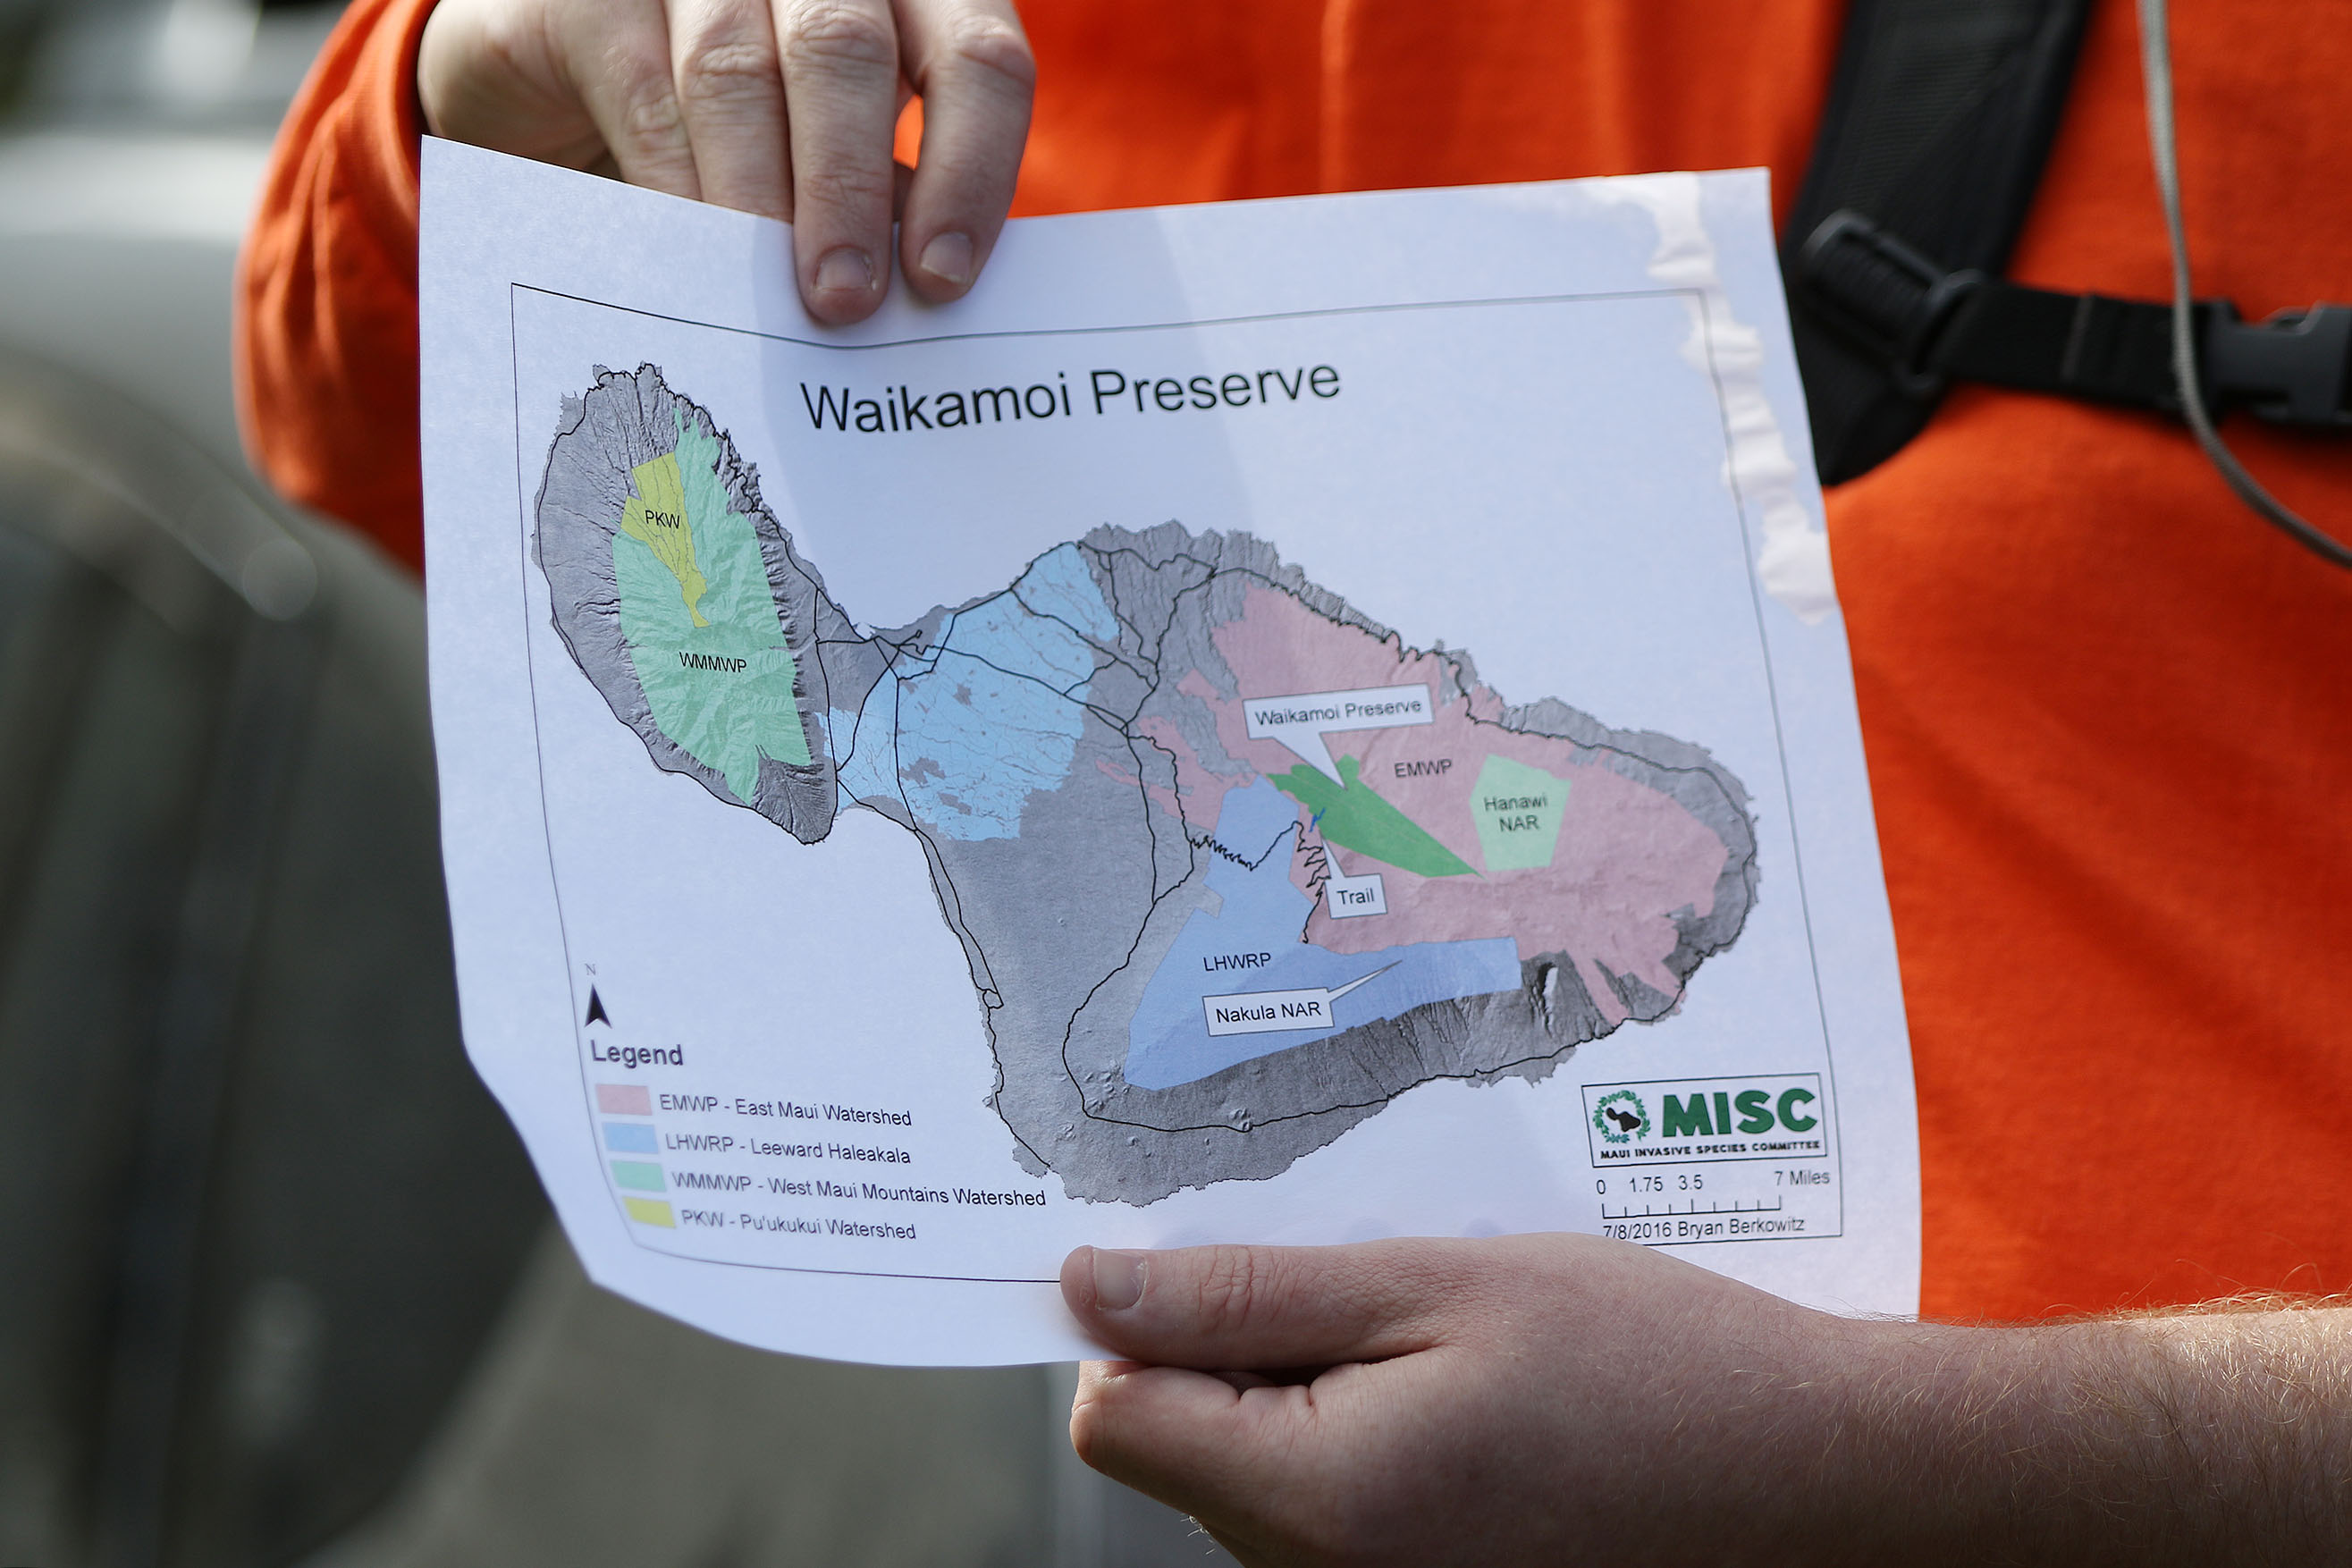 <p>On the second Saturday of every month, a small group of hikers is led into the Waikamoi Preserve, Hawaii's largest private nature preserve at 8,951 acres on the windward slope of Haleakala, Maui's dormant volcanic giant.</p>